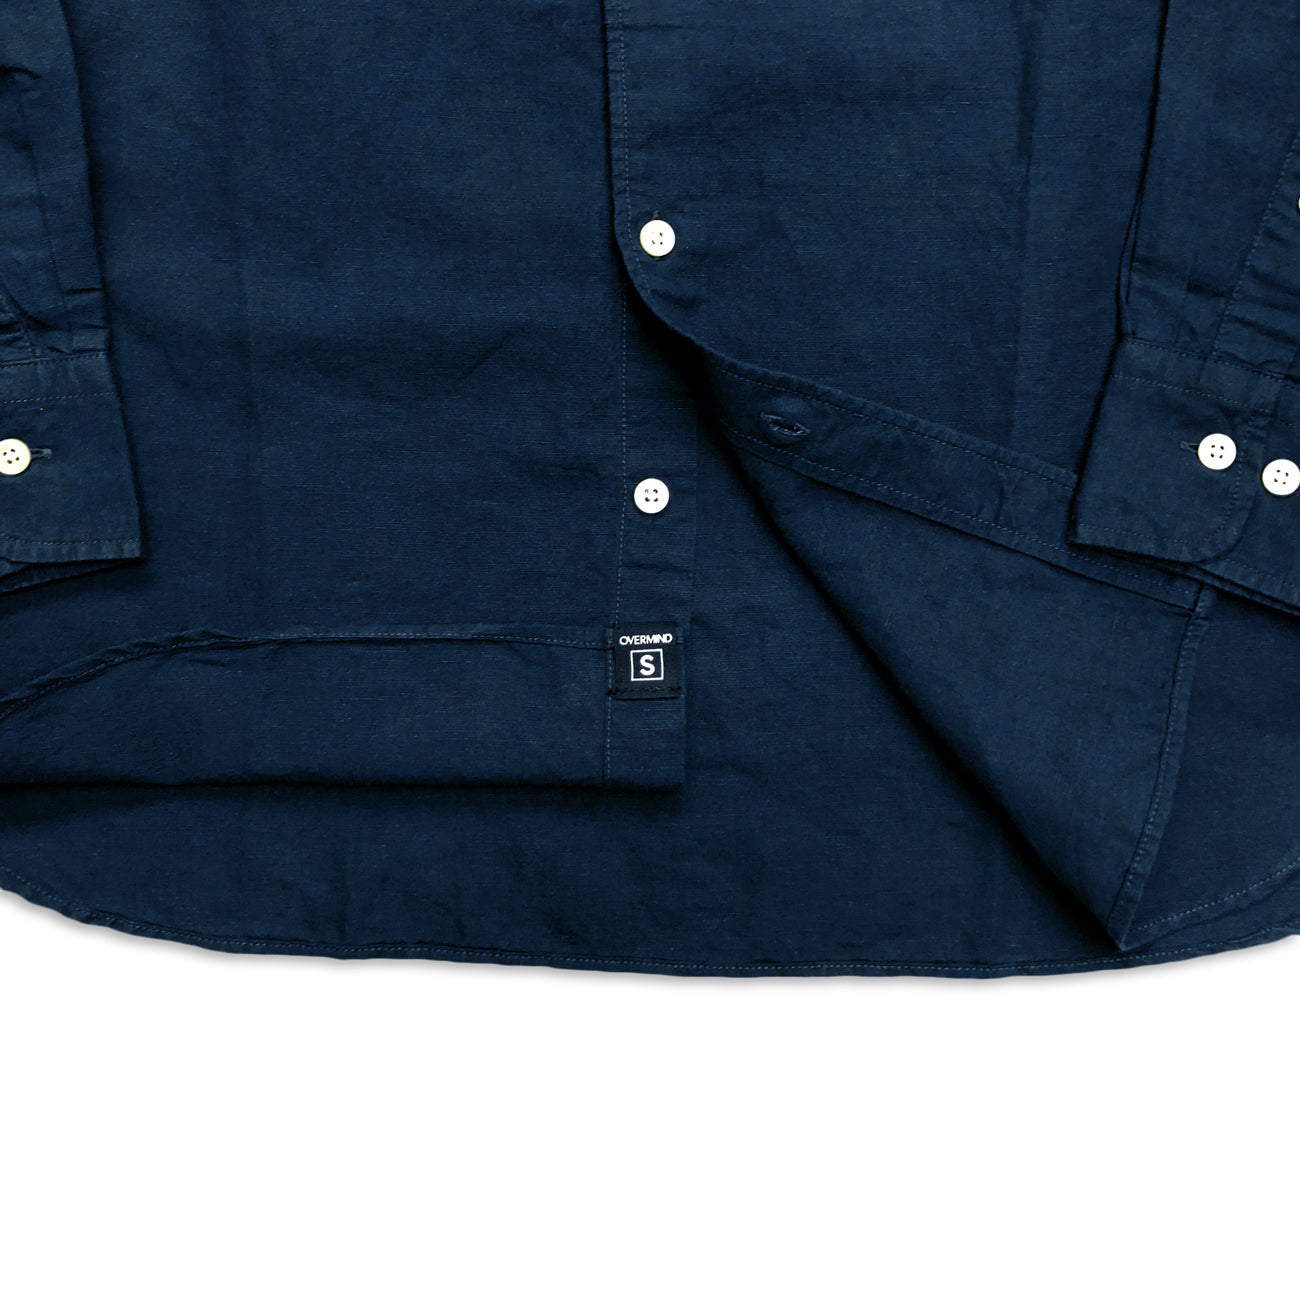 SPACE MONK SHIRT : NAVY